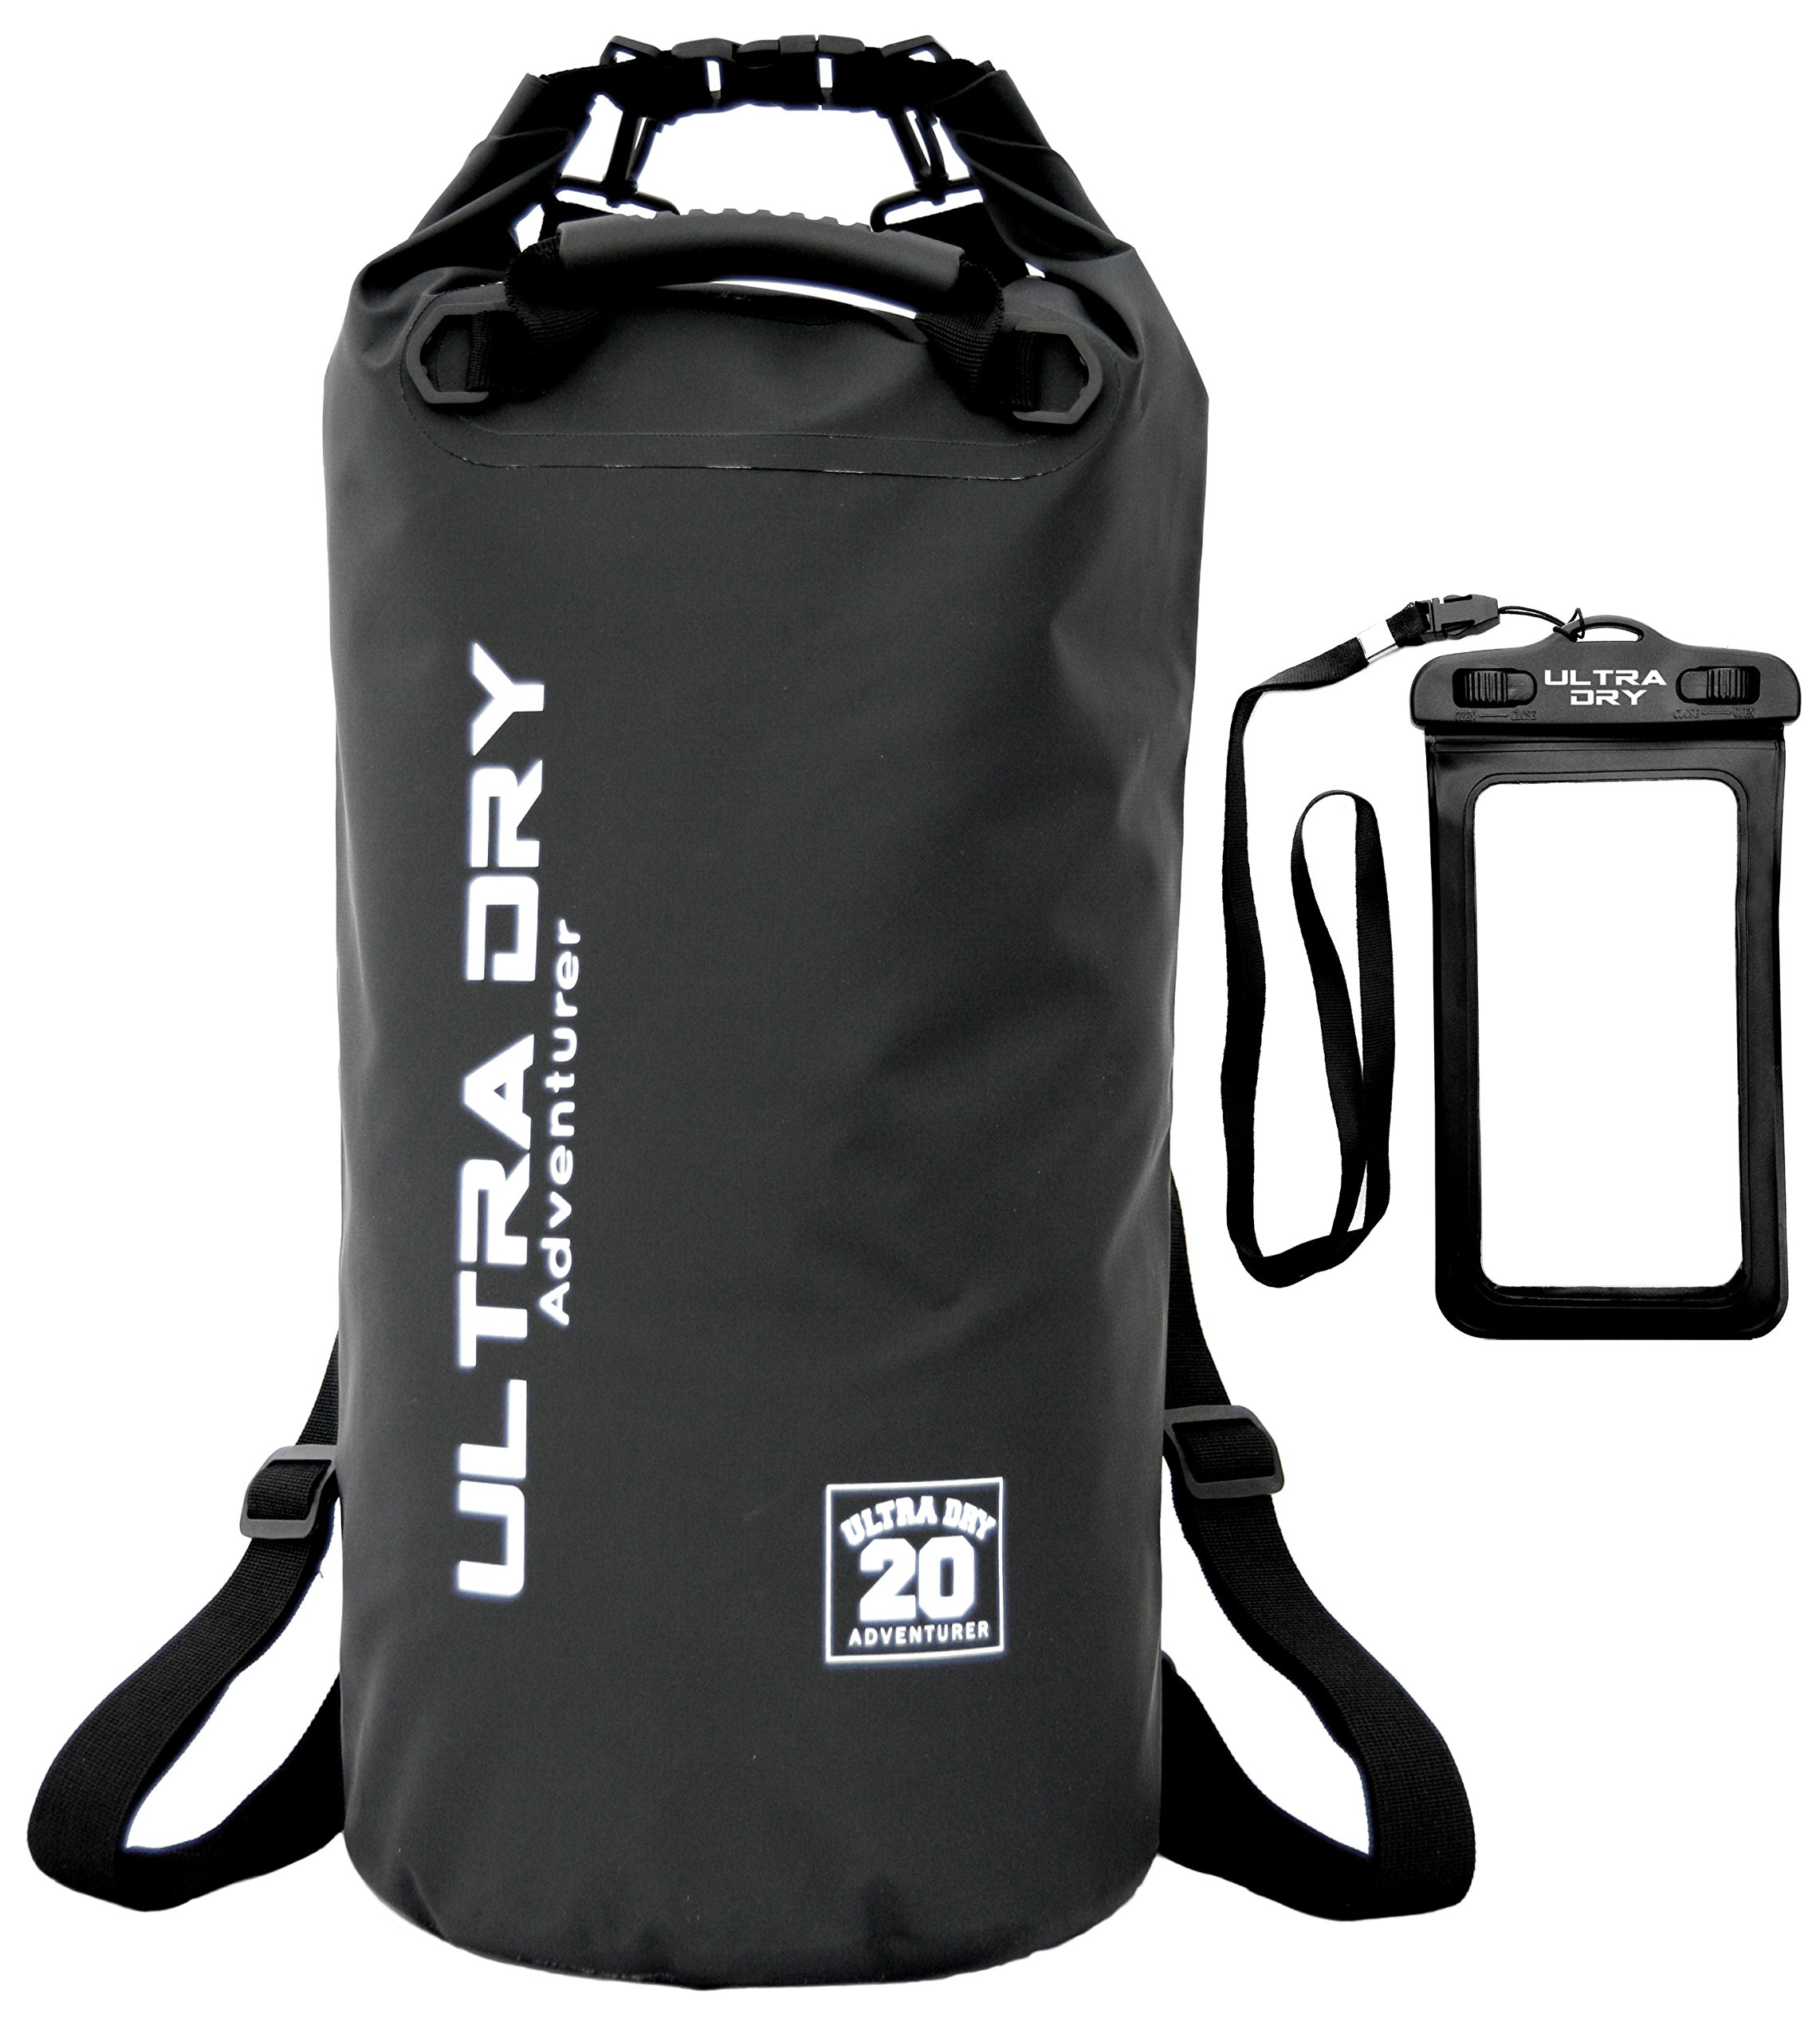 Ultra Dry Premium Waterproof Bag, Sack with phone dry bag and Long  Adjustable Shoulder Strap 15f7db99fb